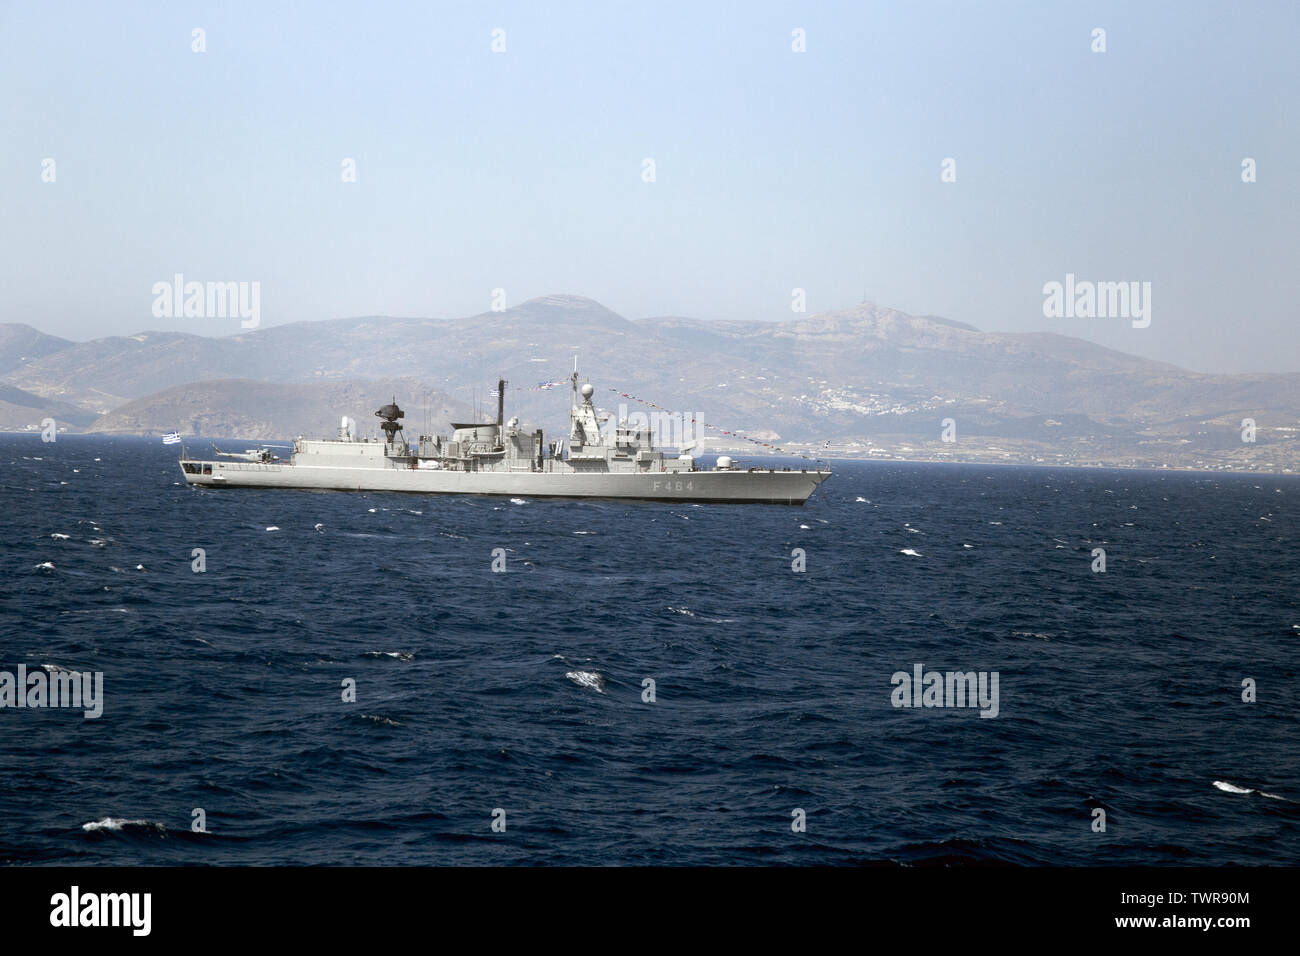 Greek naval destroyer patrols the waters of the Aegean, off Greece Stock Photo